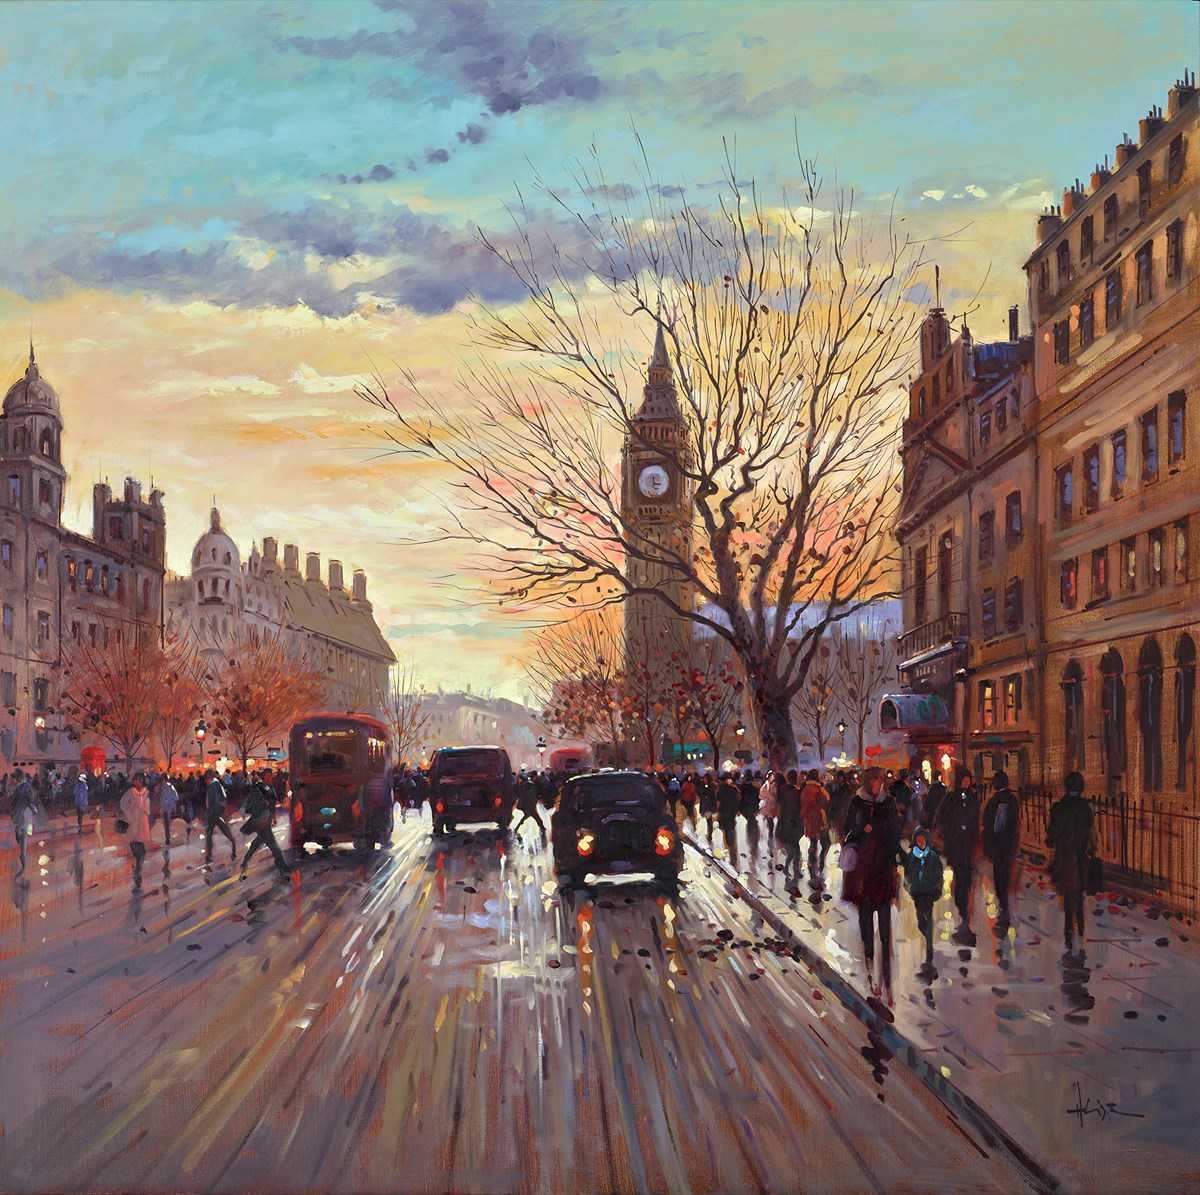 Big Ben Sunset by henderson cisz -  sized 40x40 inches. Available from Whitewall Galleries